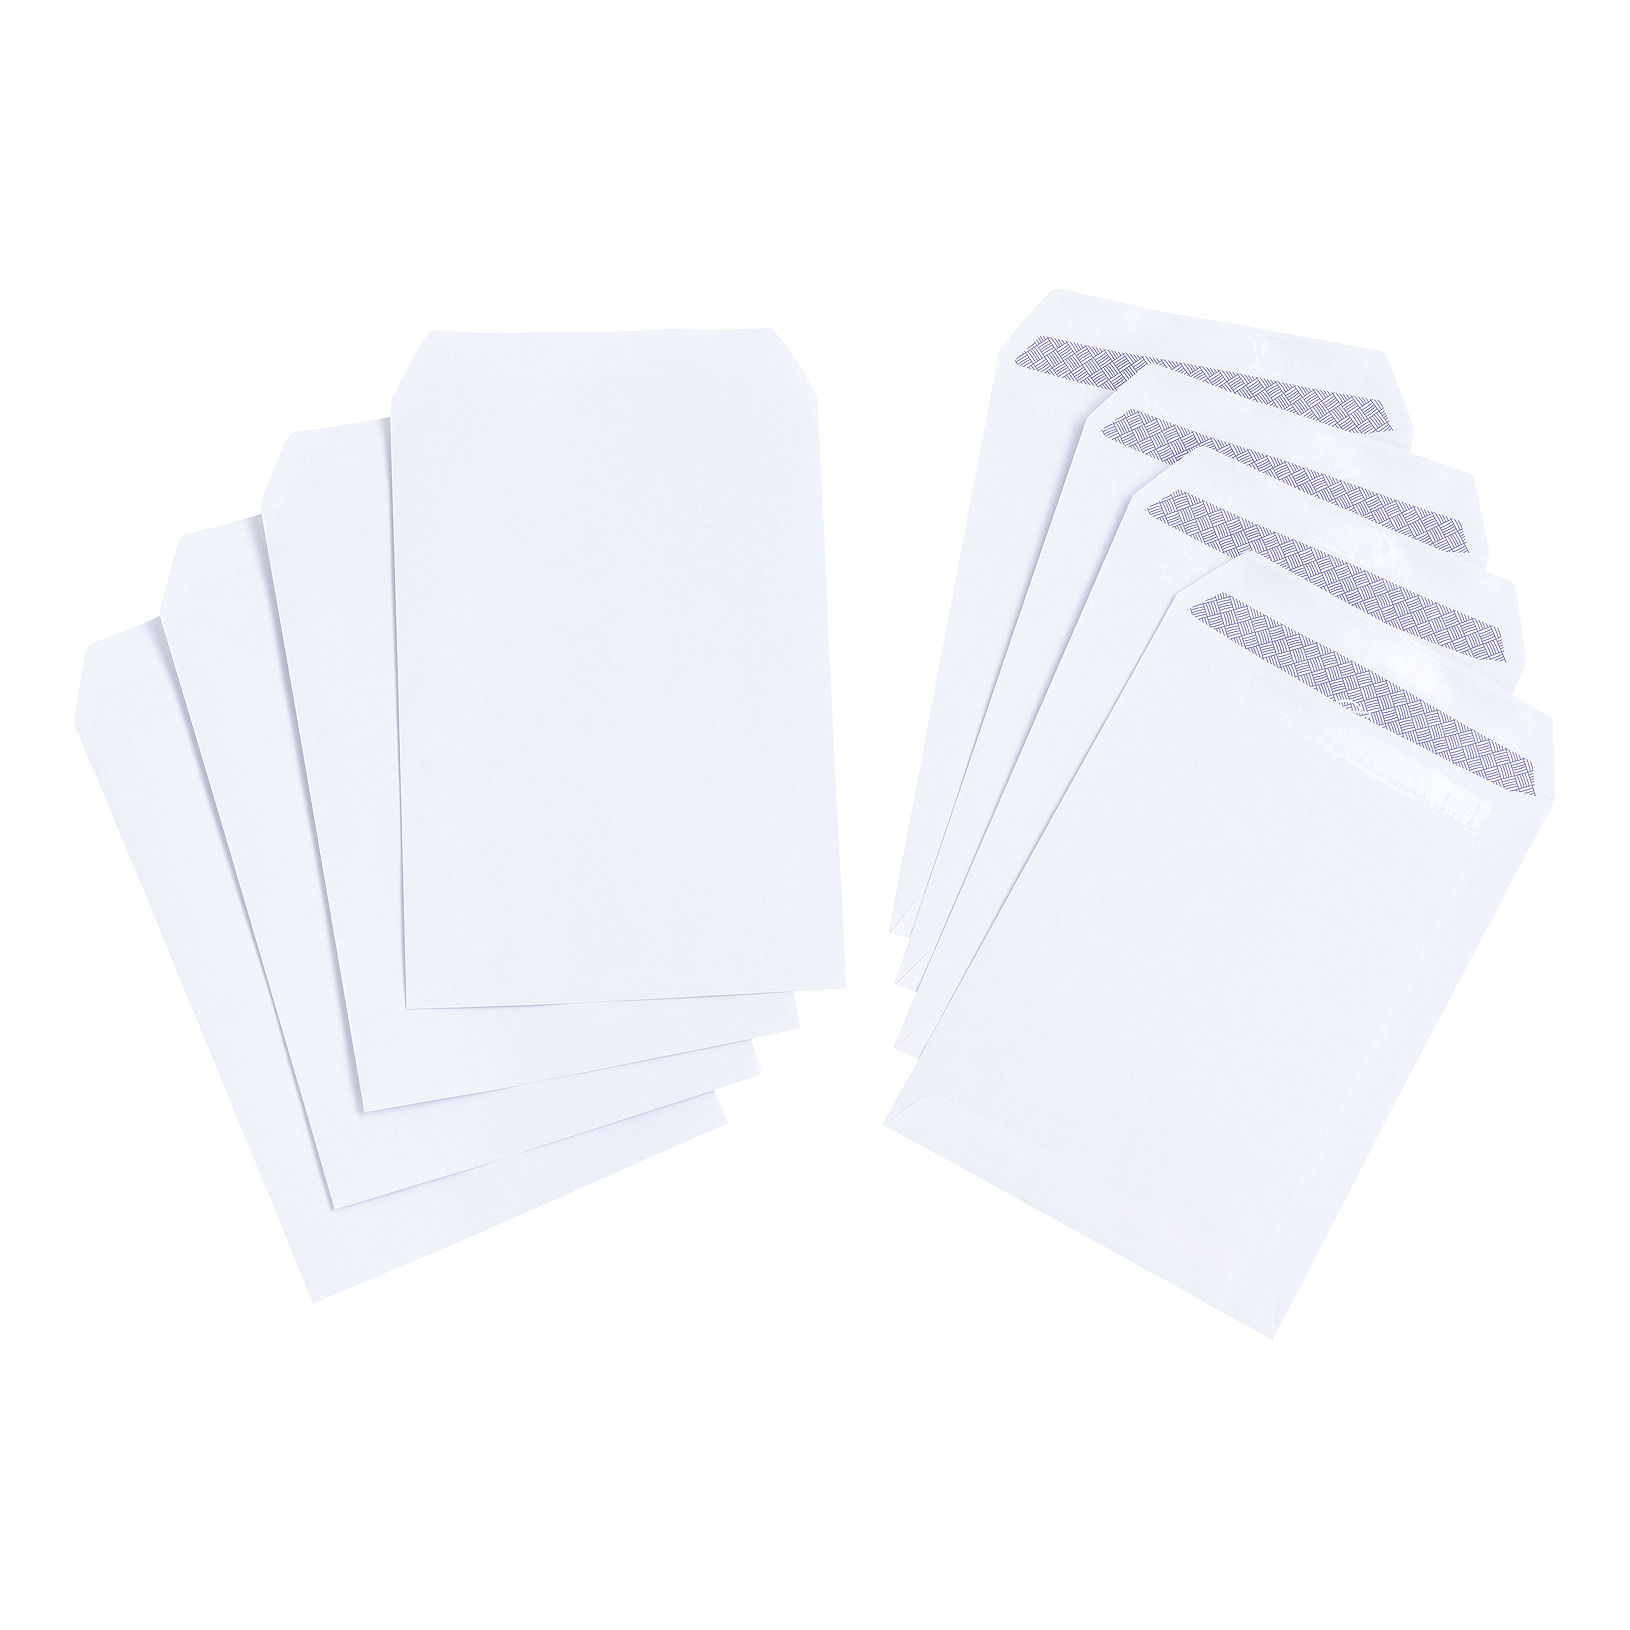 Kestrel White Pocket Envelope100gsm Opaqued Fastseal 500 pack - C5 229 x 162mm